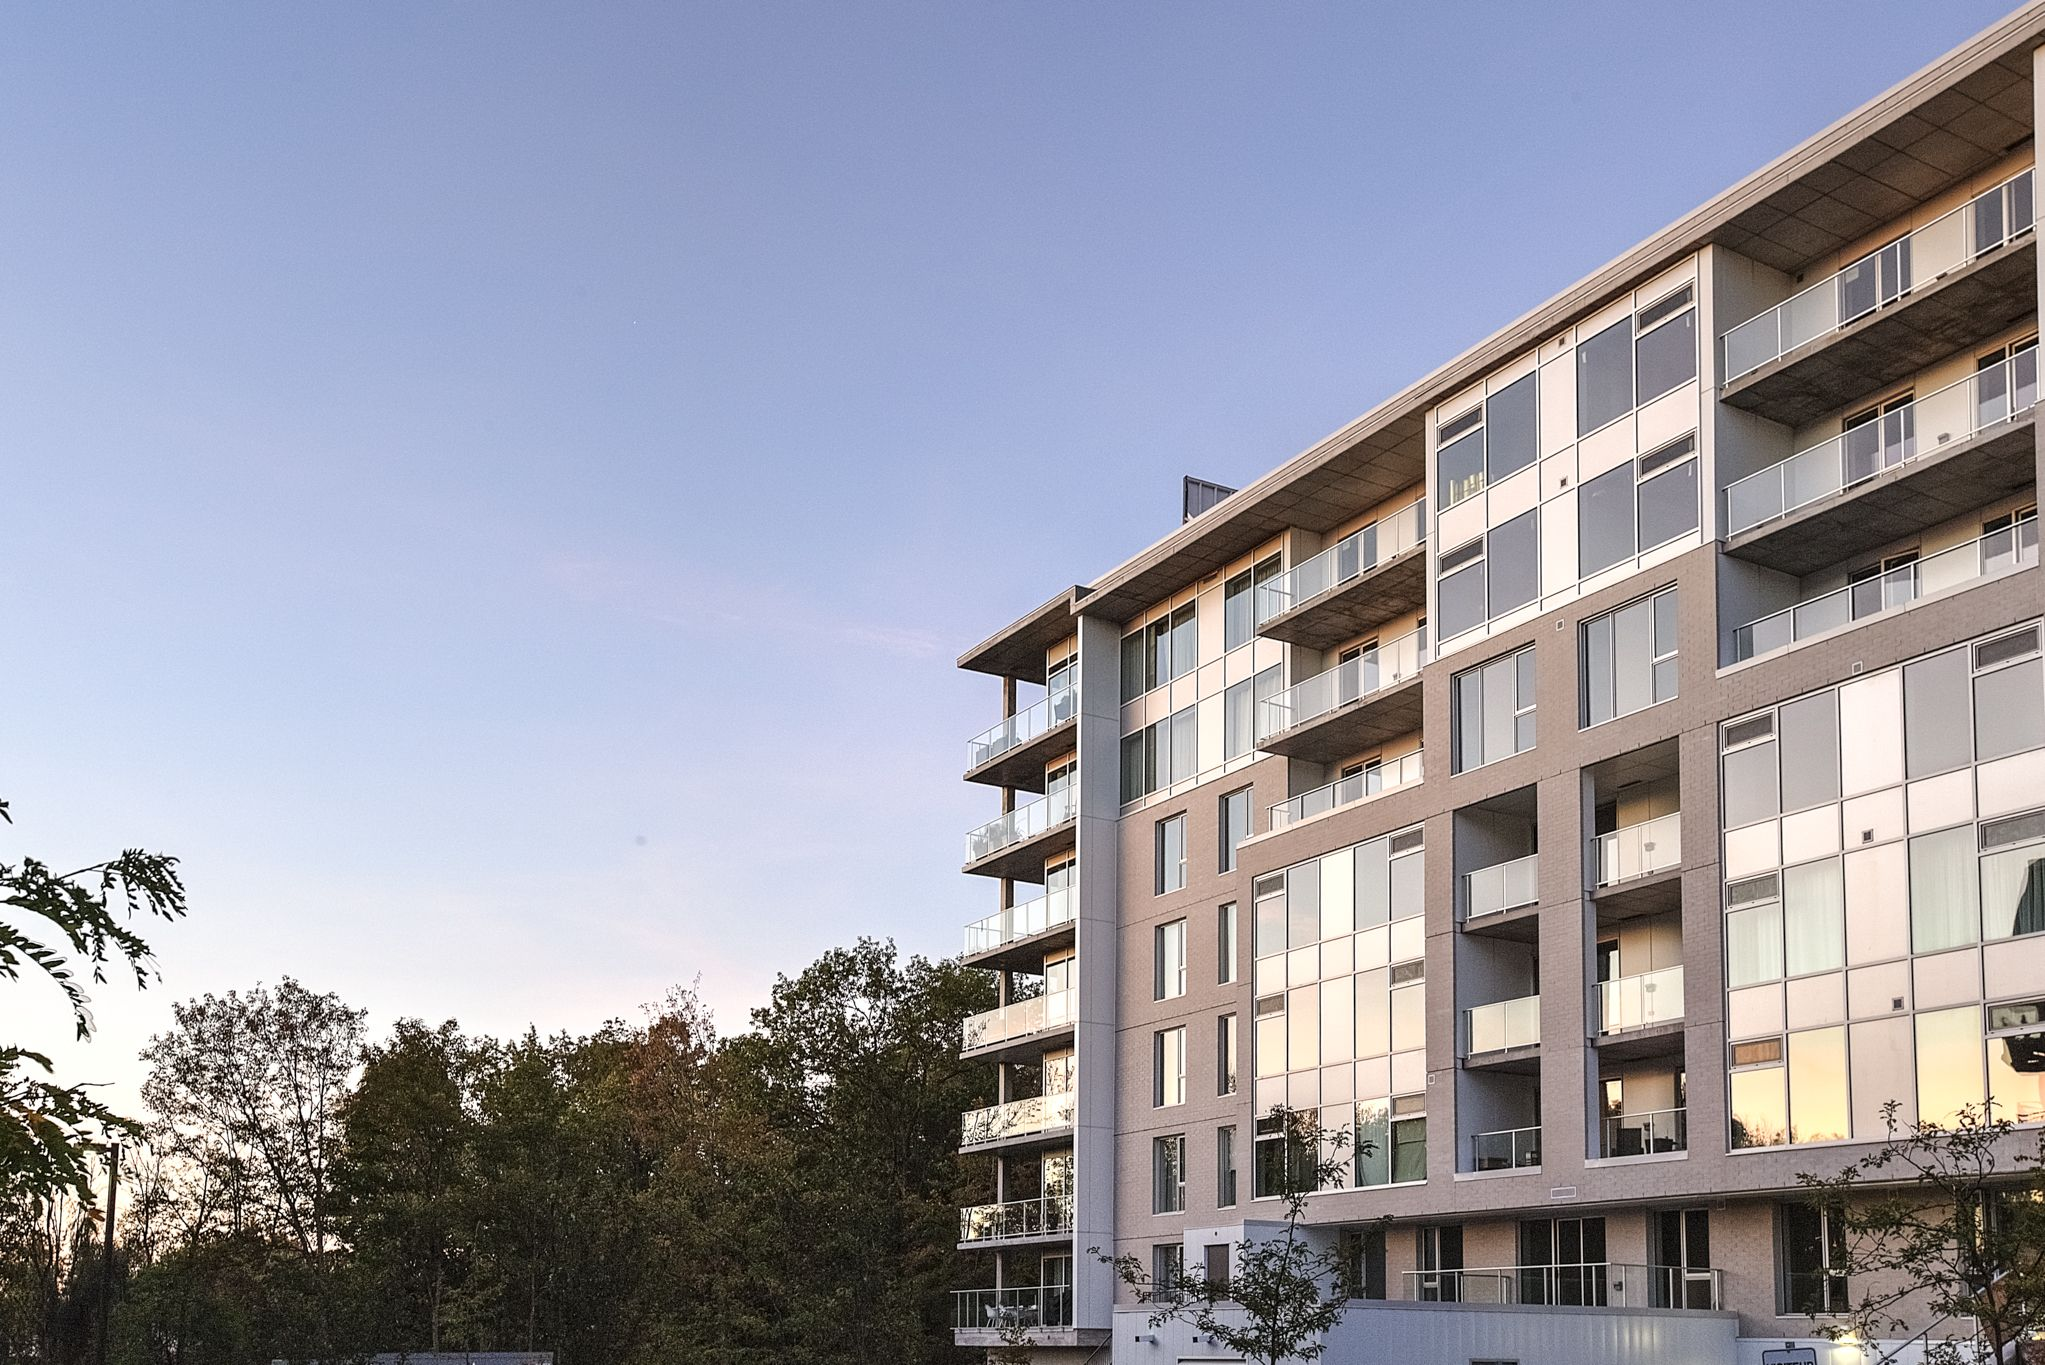 Condo for sale in Blainville